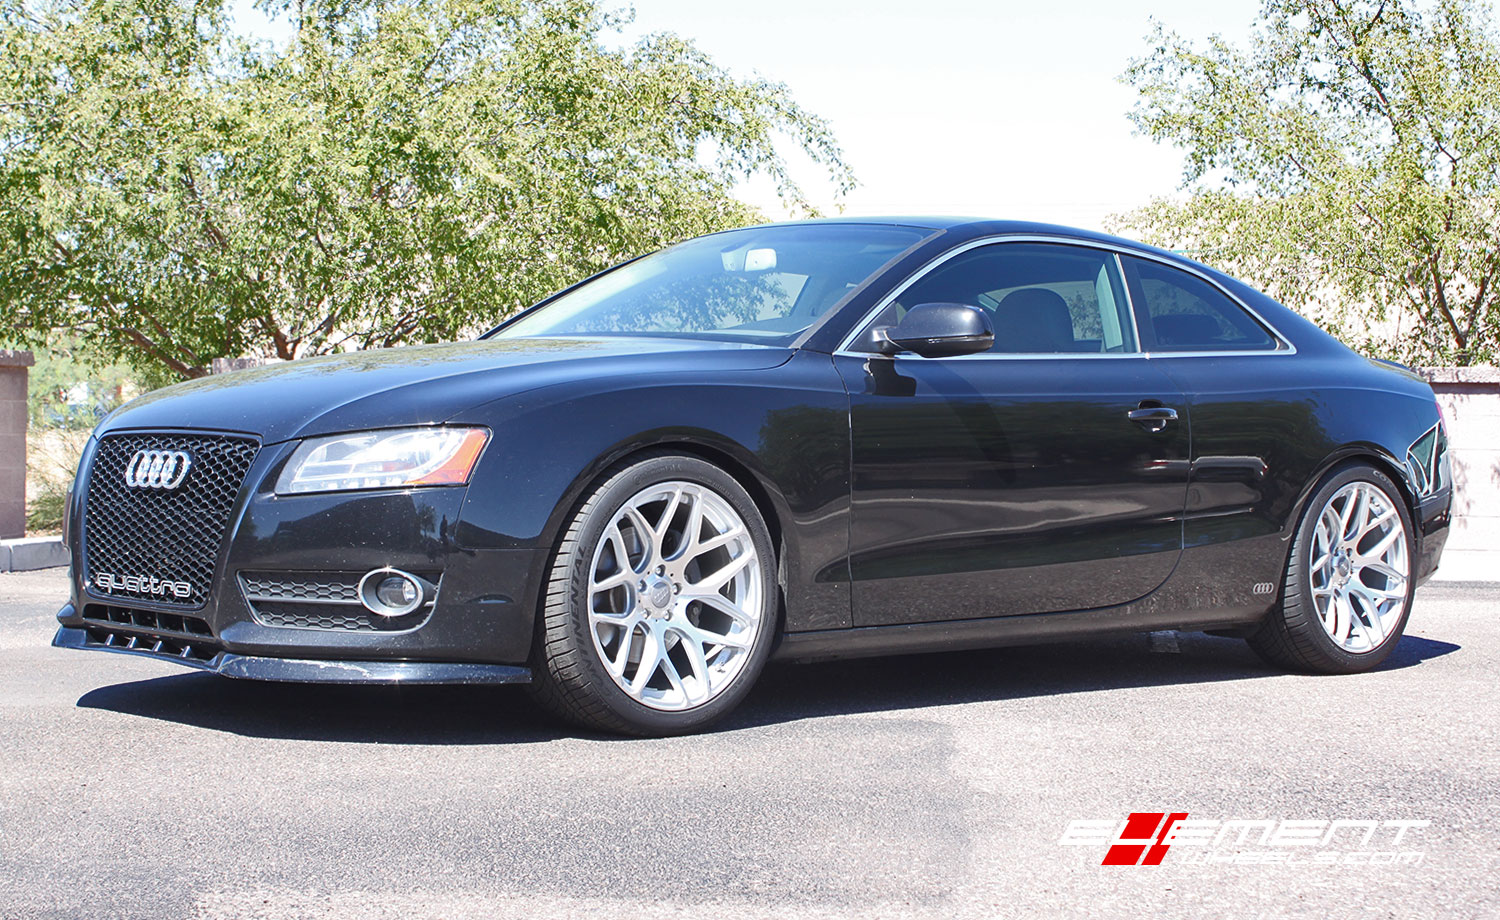 Audi Wheels Custom Rim And Tire Packages